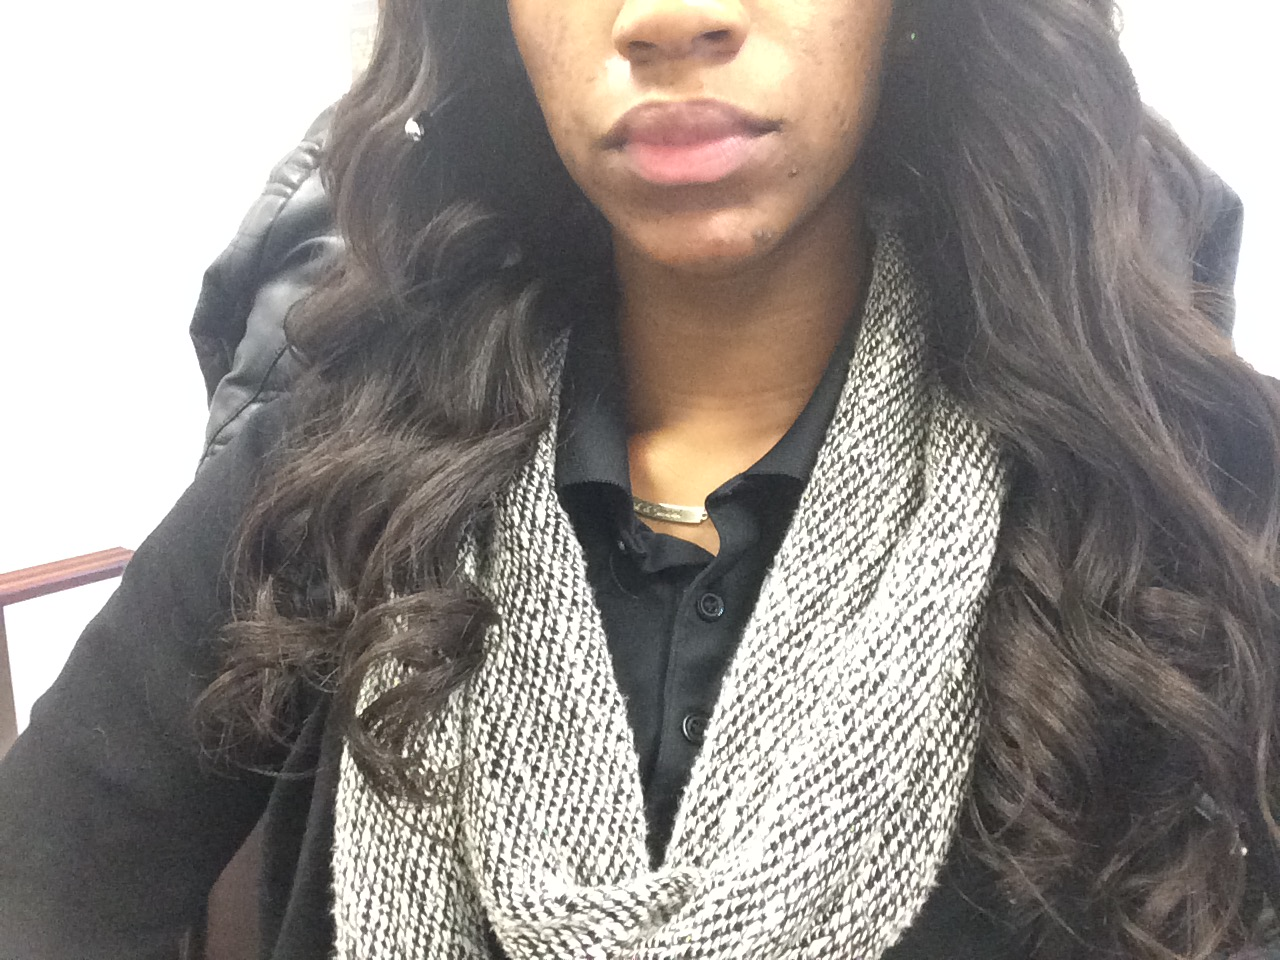 day 4 curls/waves (curling wand)